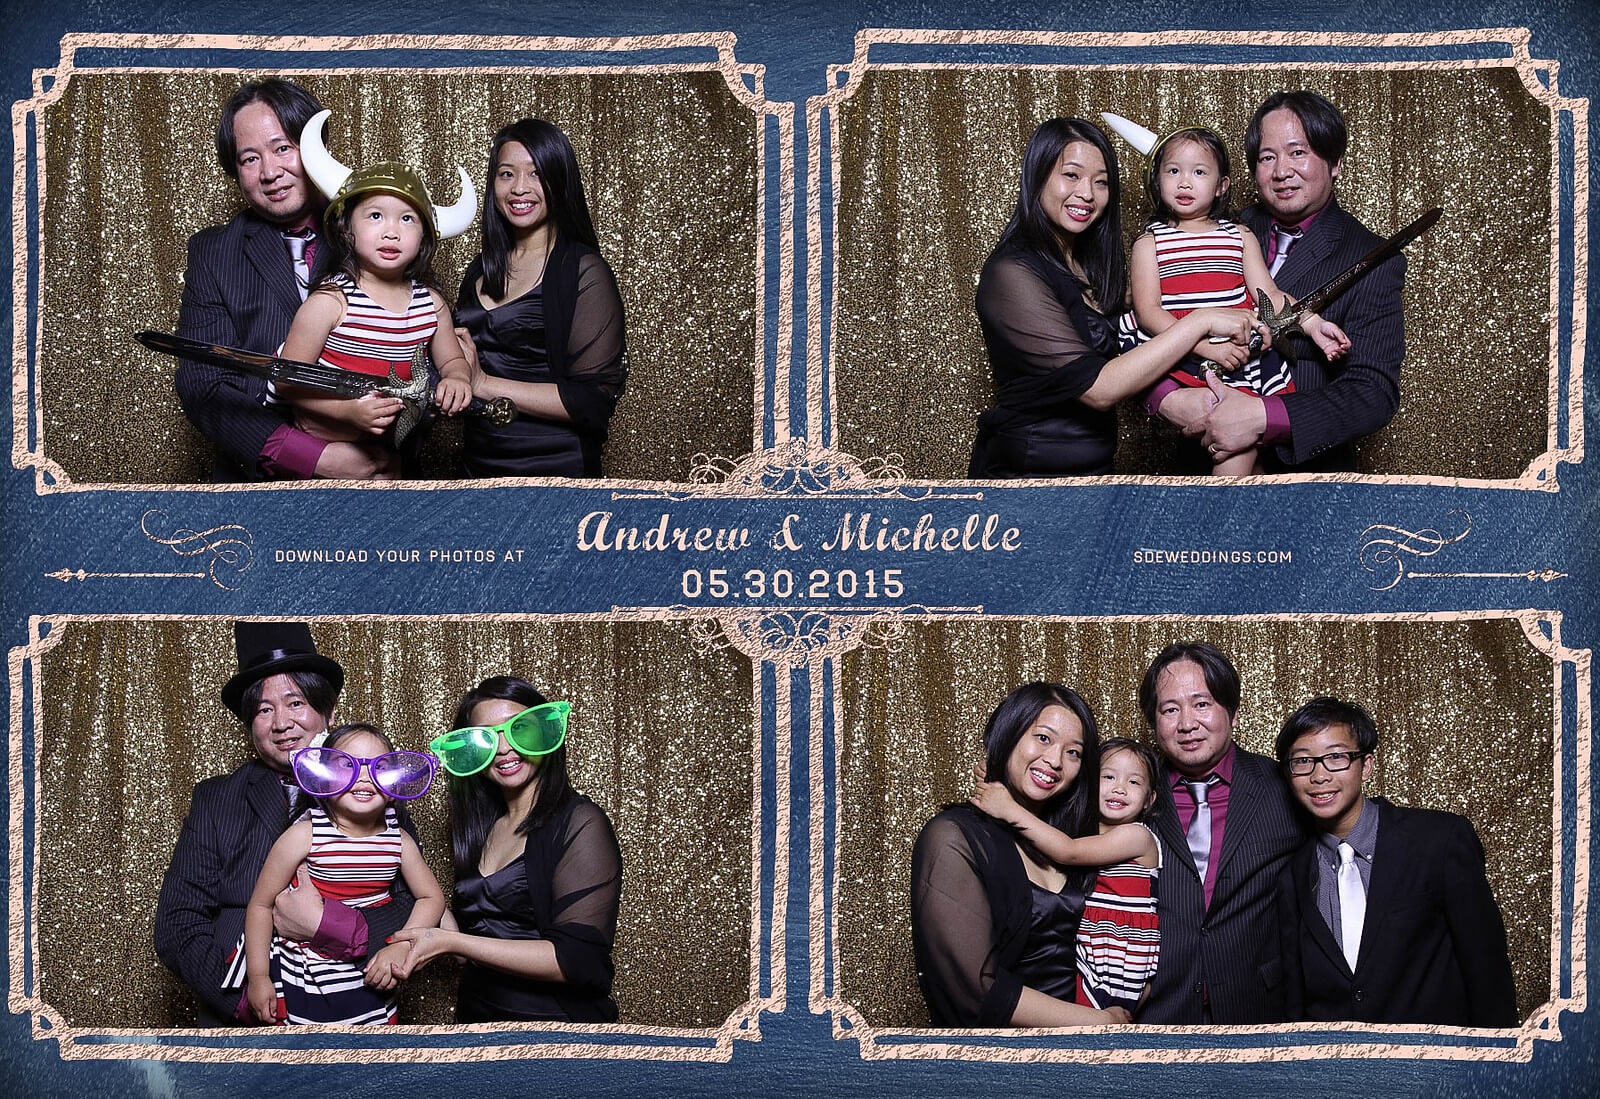 Toronto Police Wedding Photobooth at Peel Regional Police Association Banquet Hall 9